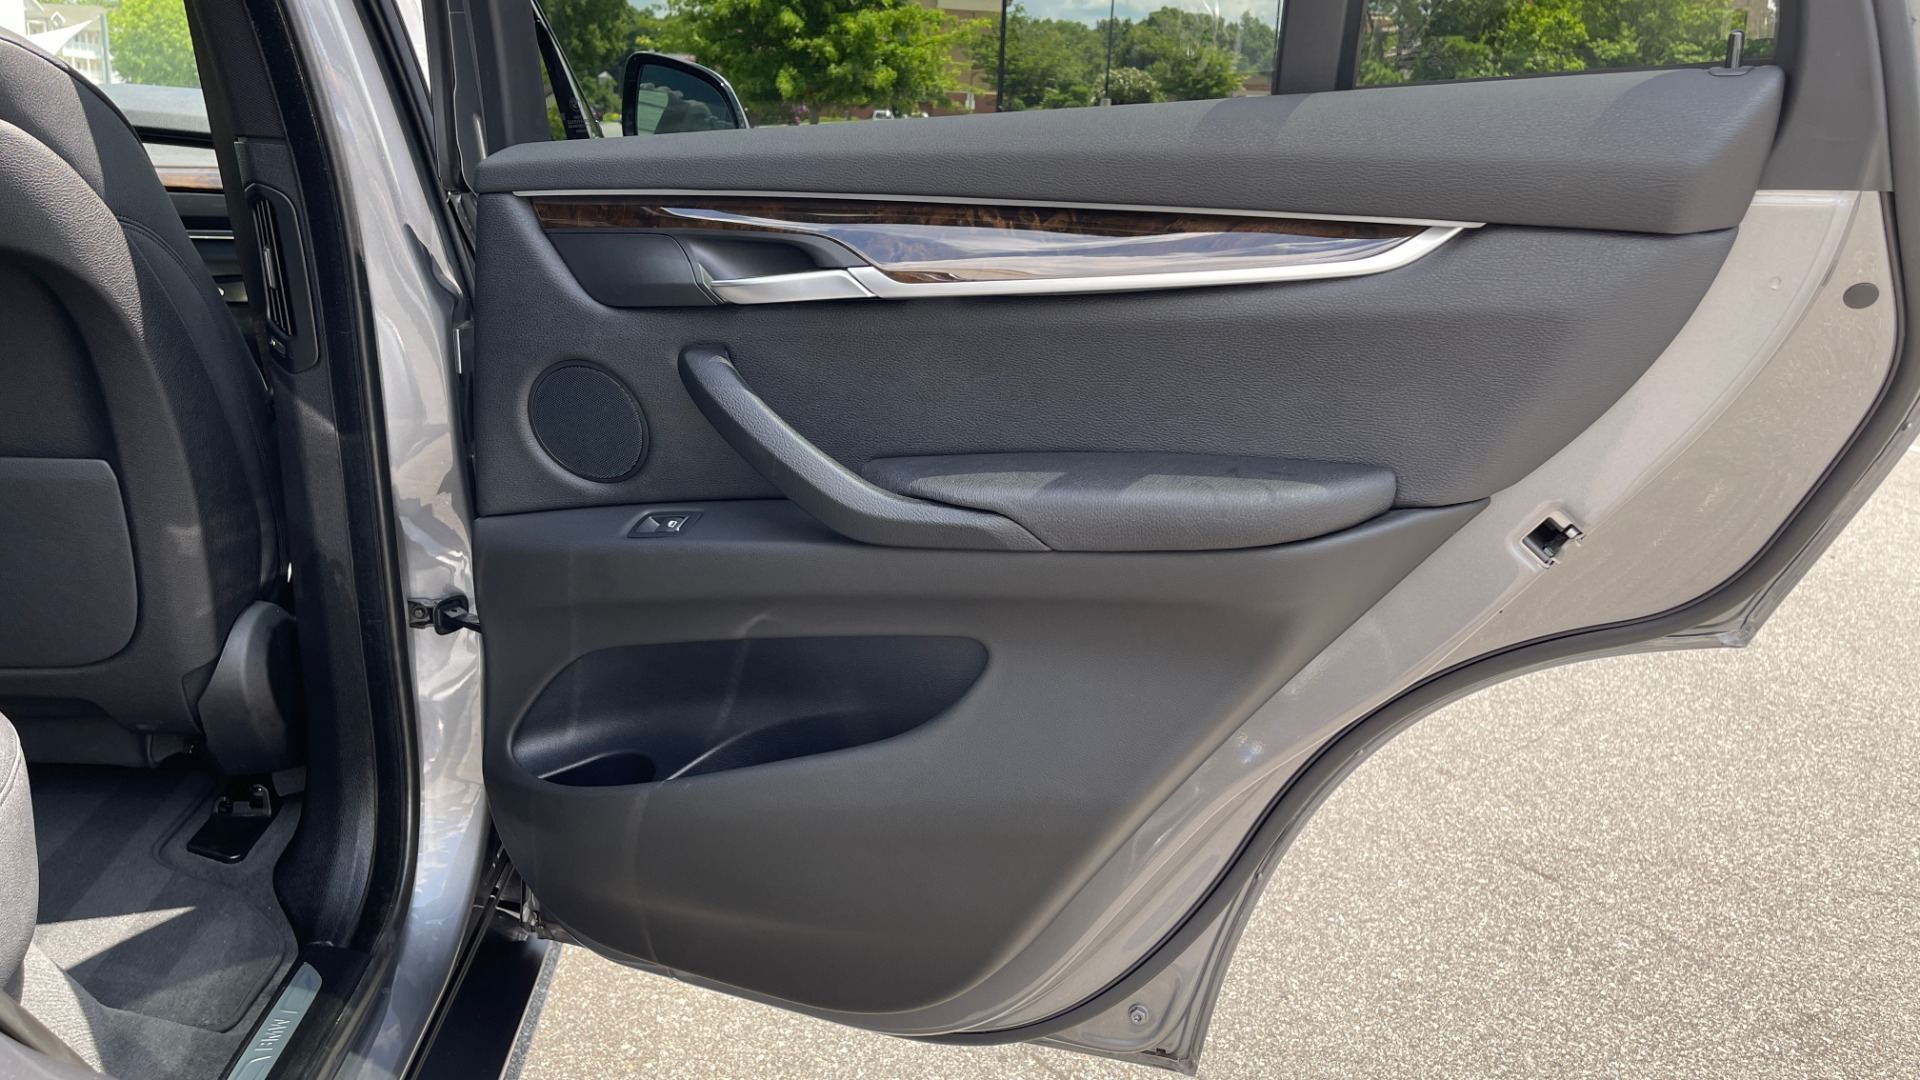 Used 2018 BMW X5 XDRIVE35I PREMIUM / DRVR ASST / WIRELESS CHARGING / CAMERAS for sale $46,995 at Formula Imports in Charlotte NC 28227 73